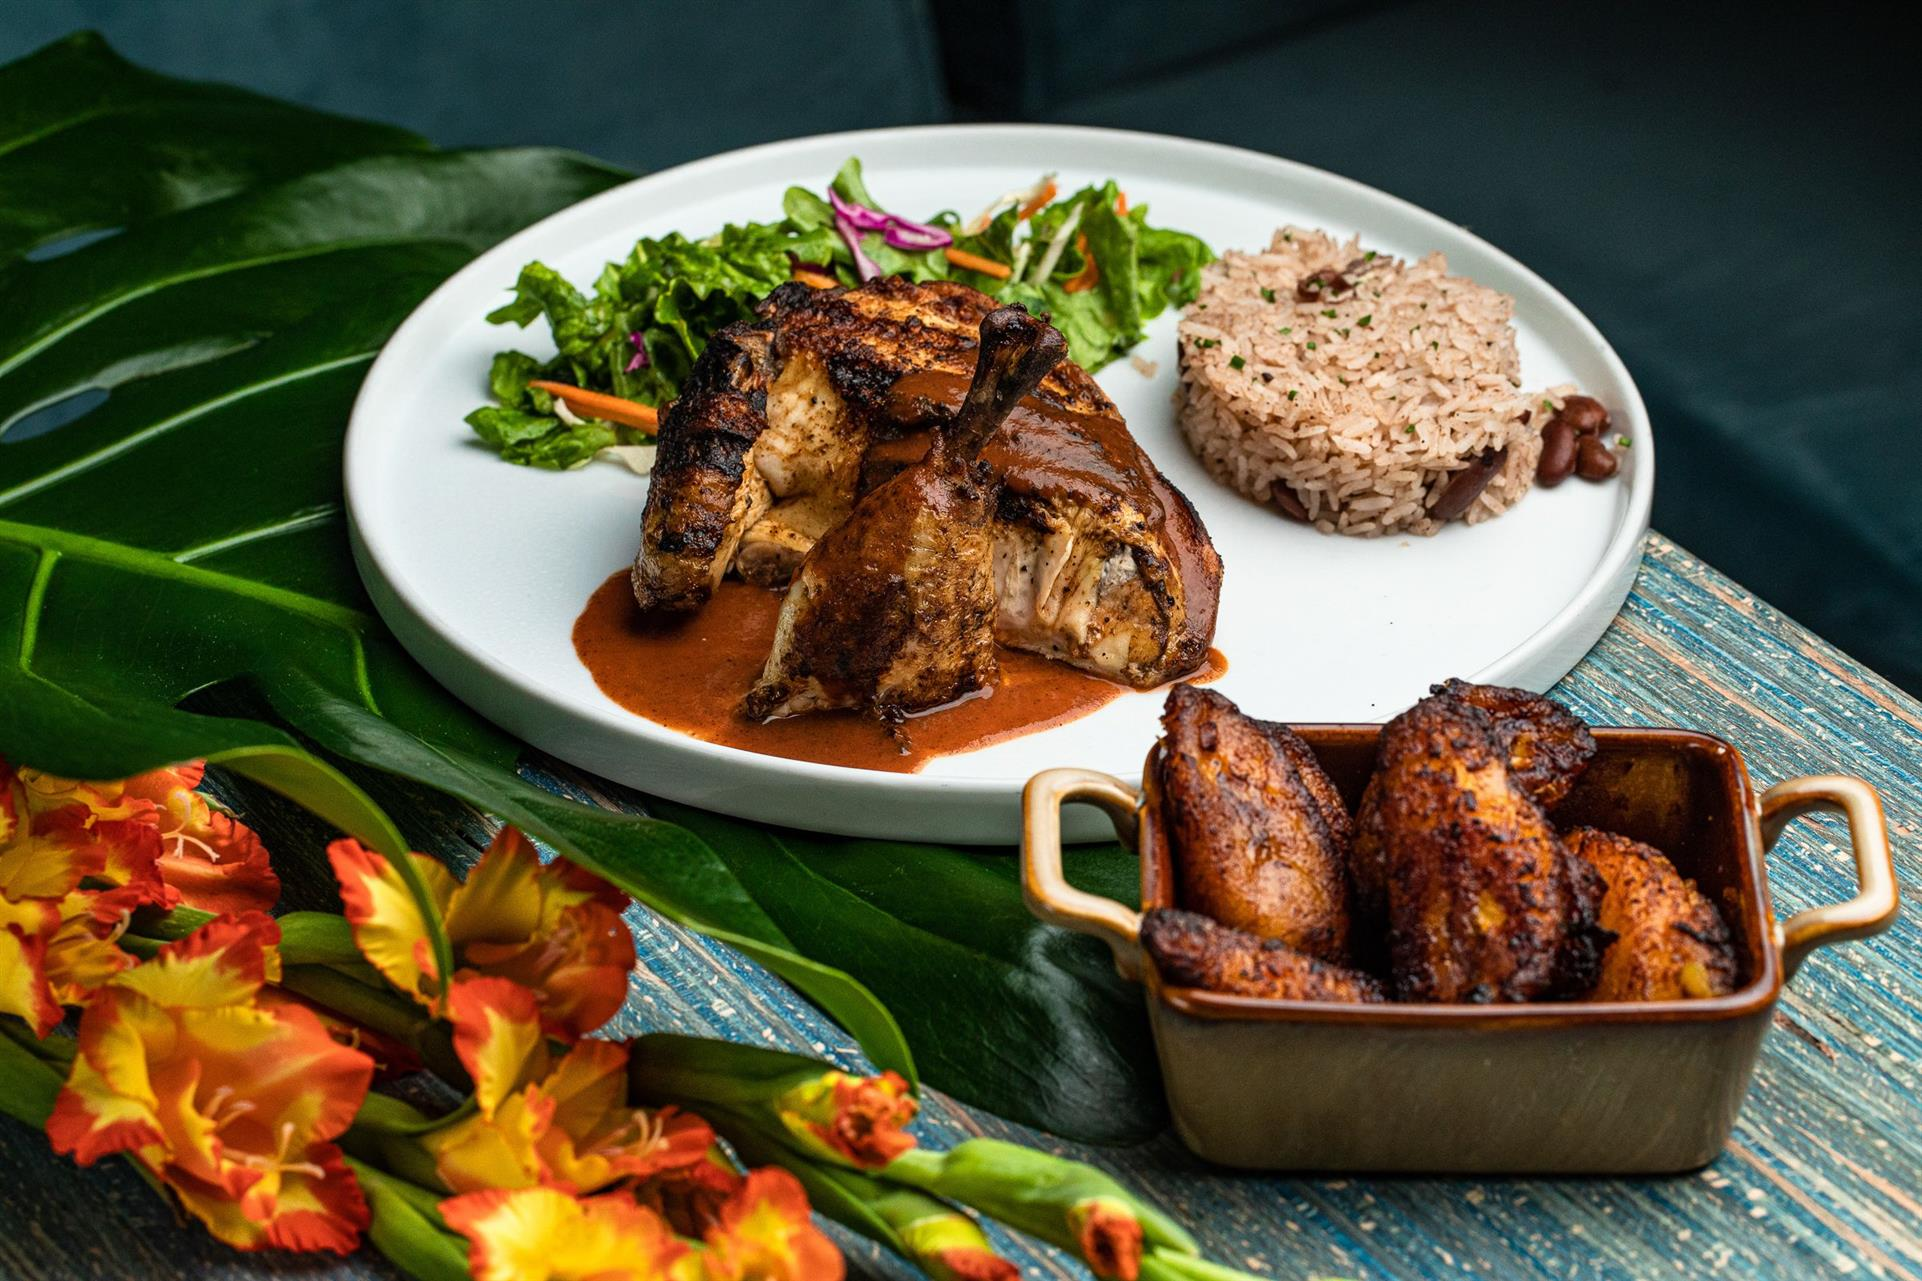 Jerk chicken with rice & peas, house salad ginger honey dressing. Side of sweet plantains